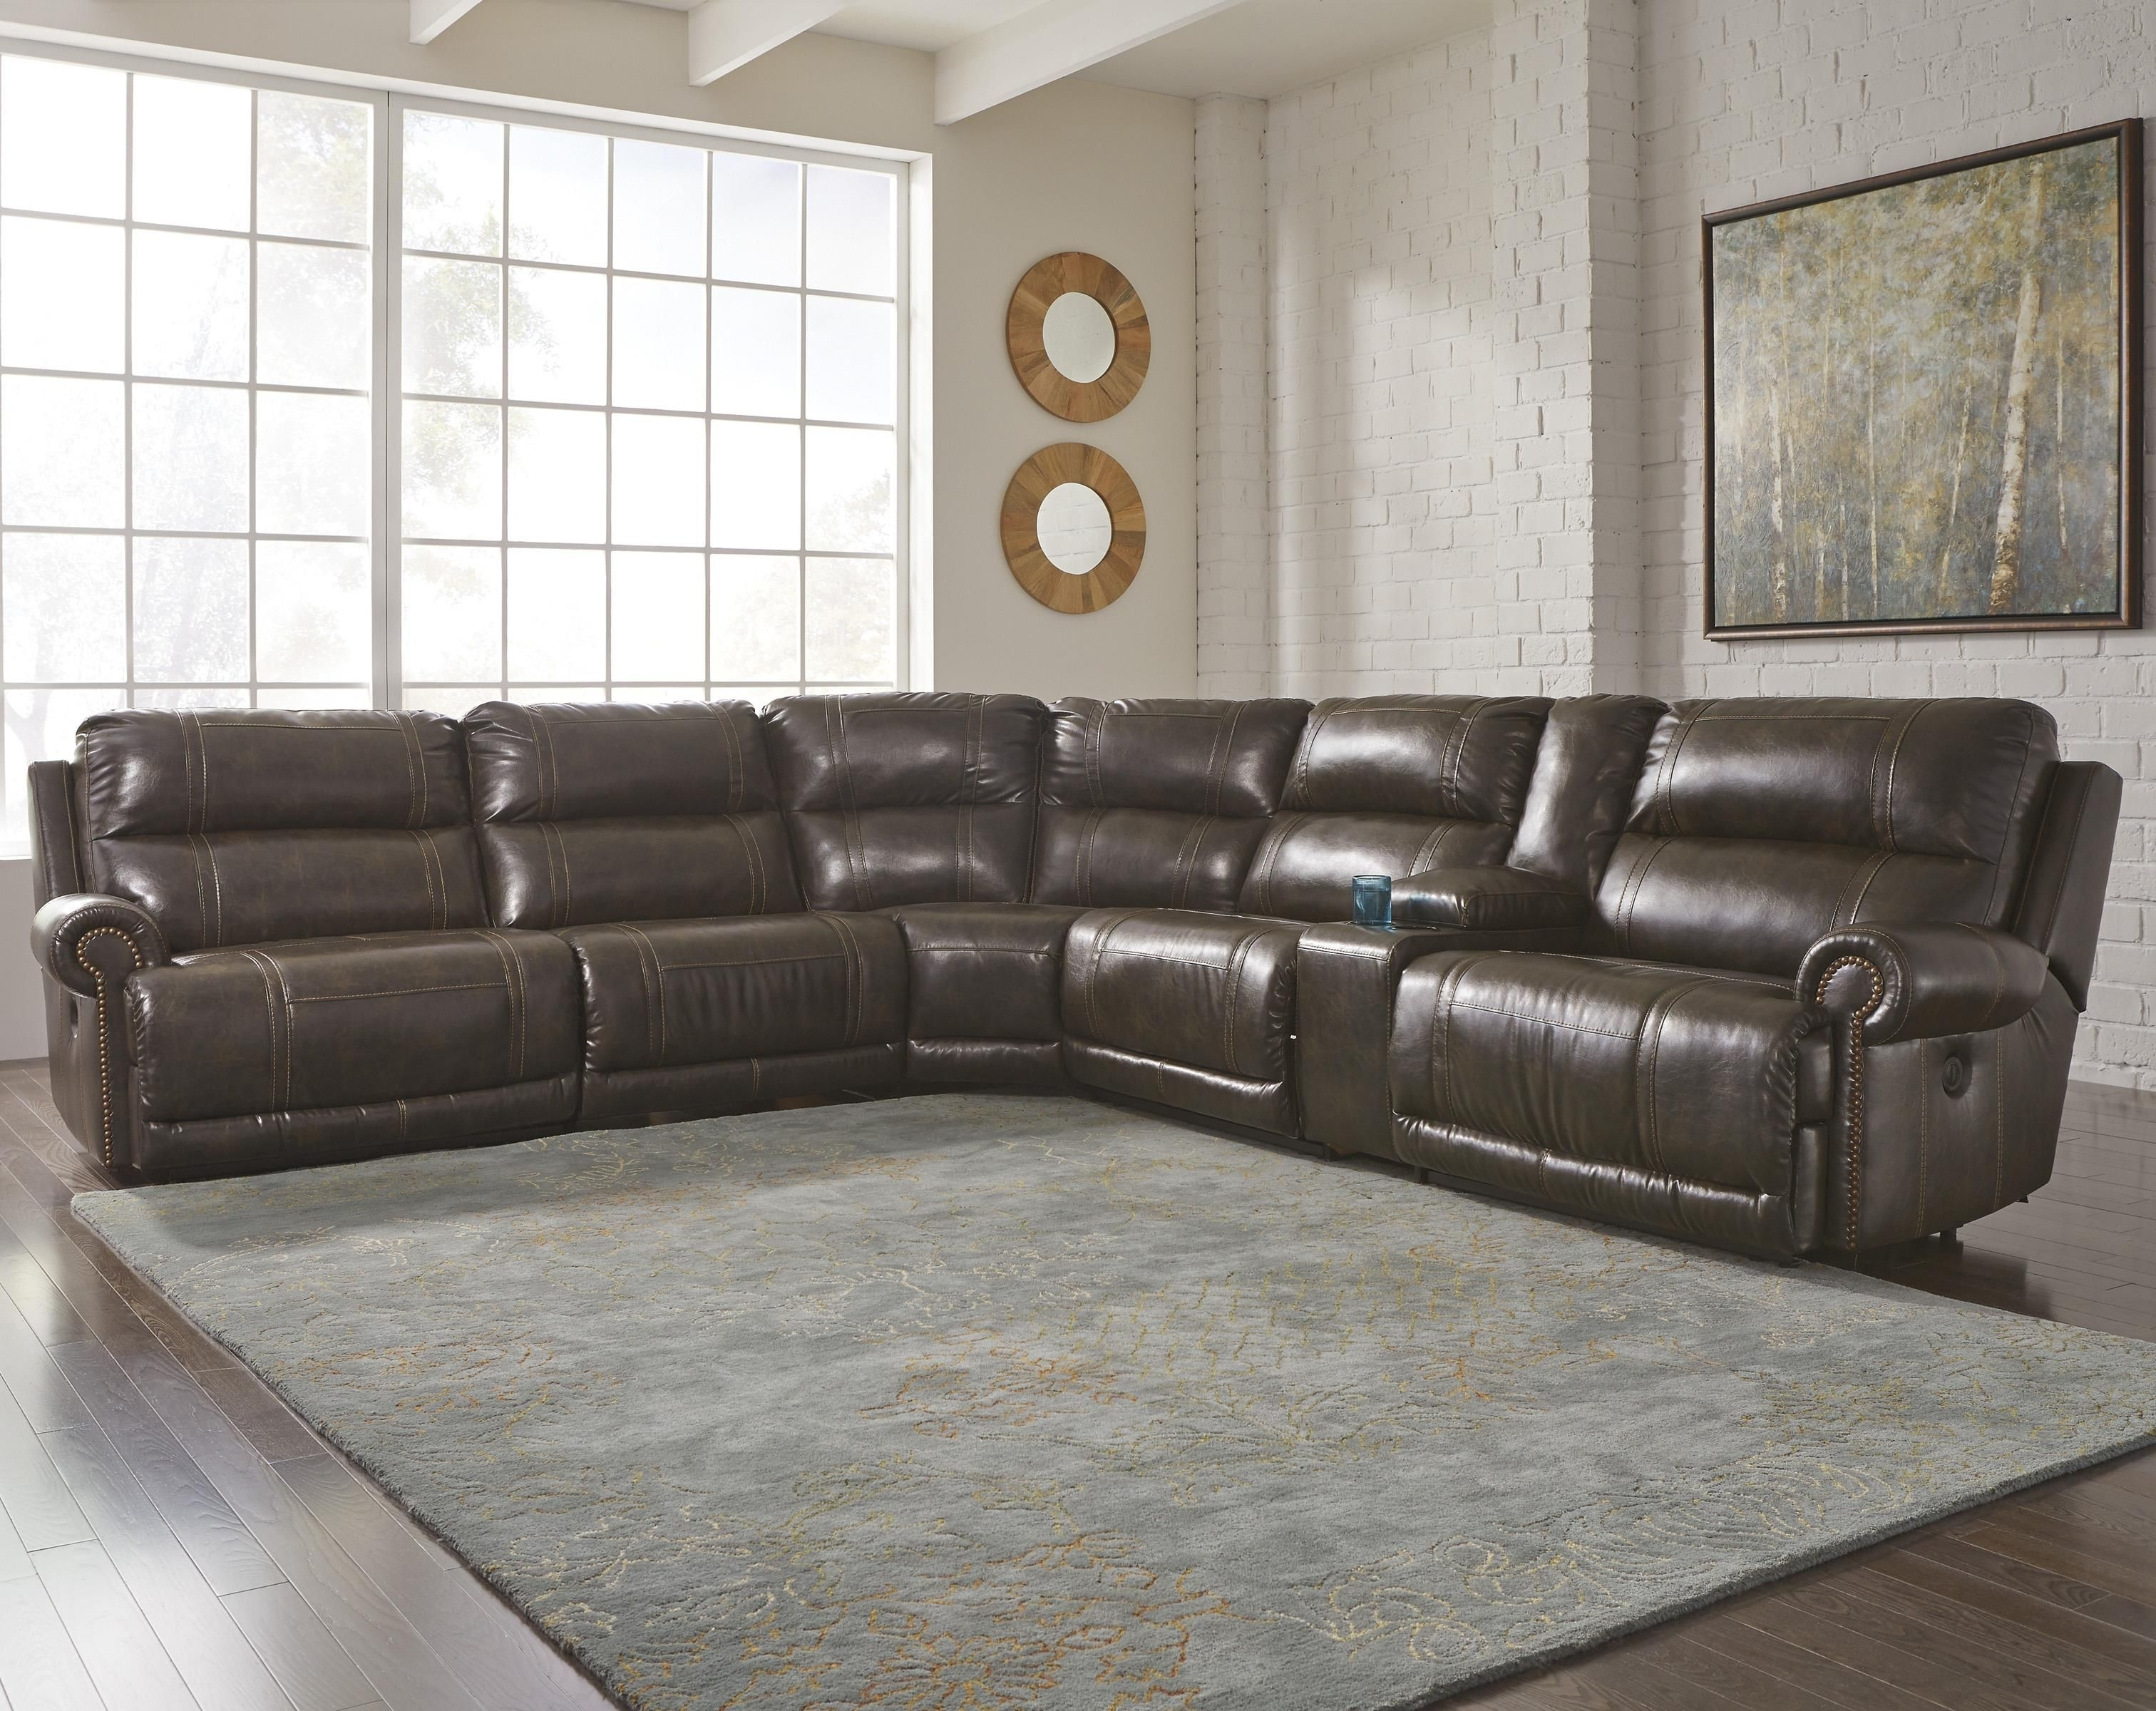 Trendy Eau Claire Wi Sectional Sofas Regarding Dak Durablend® 6 Piece Reclining Sectionalsignature Design (View 16 of 20)